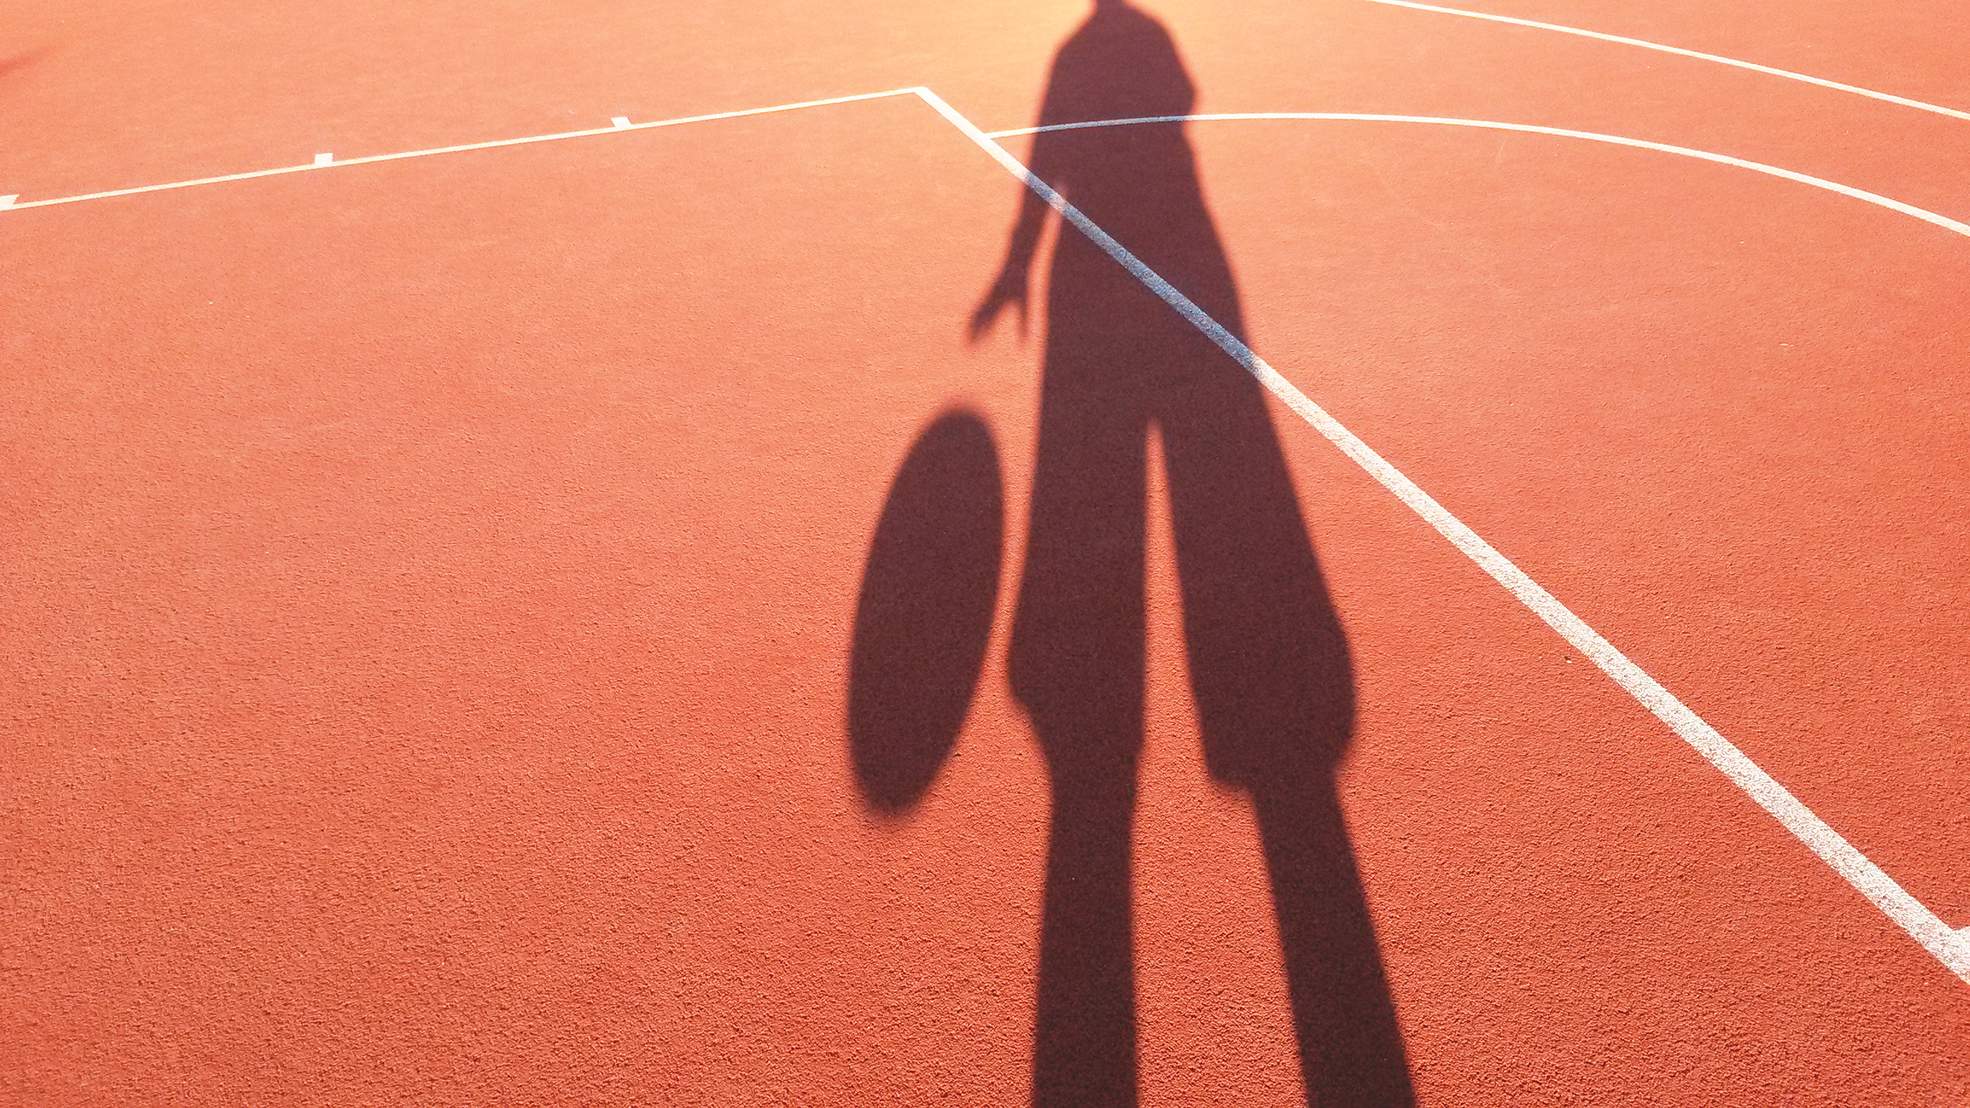 Basketball Shadow